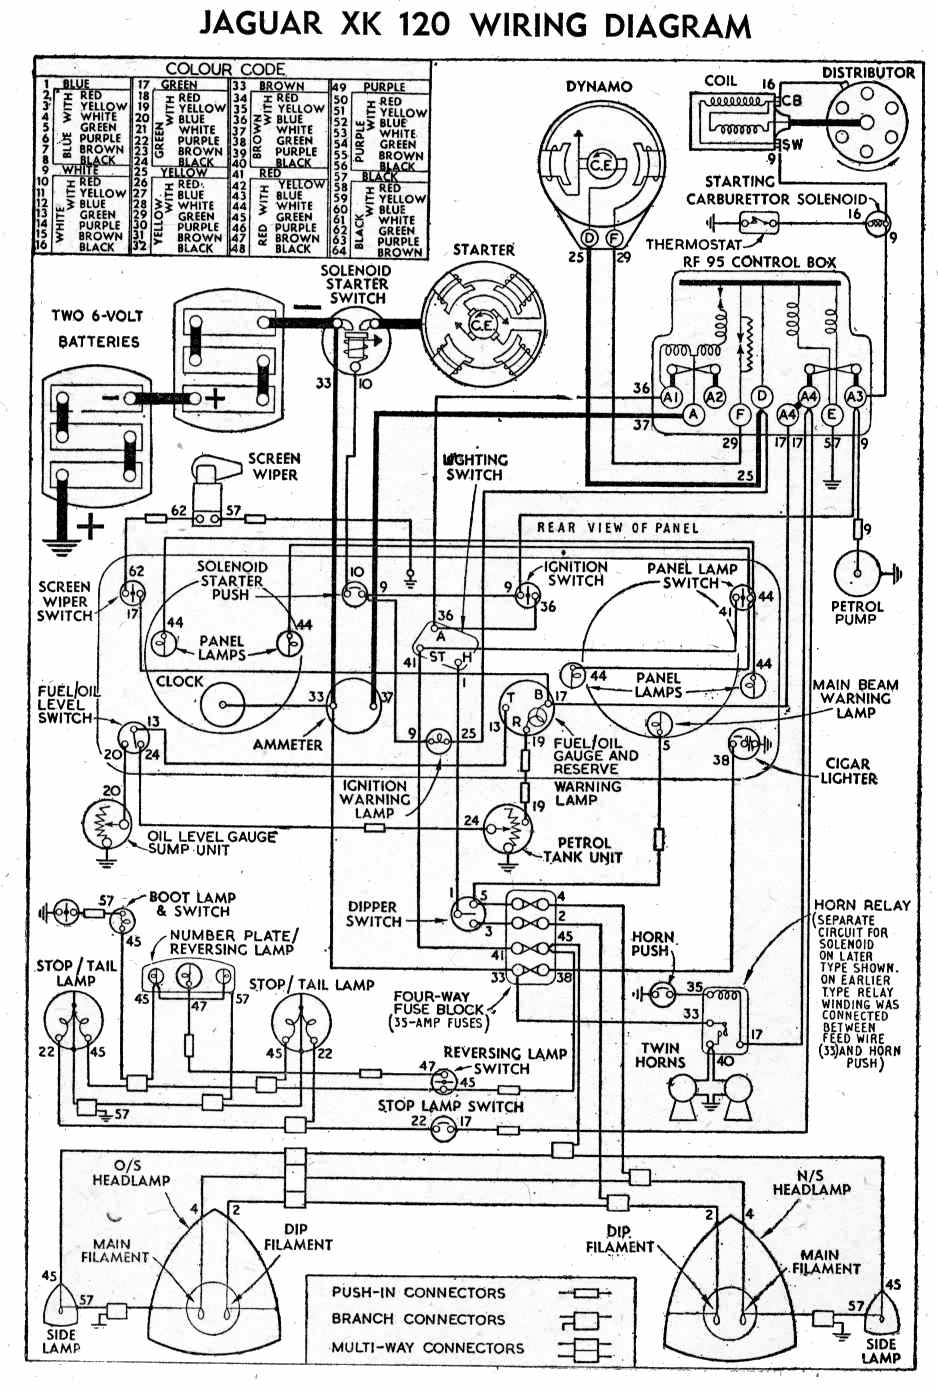 jaguar xk120 wiring diagram wiring diagram third level schematic diagram xk120 wiring diagram #3